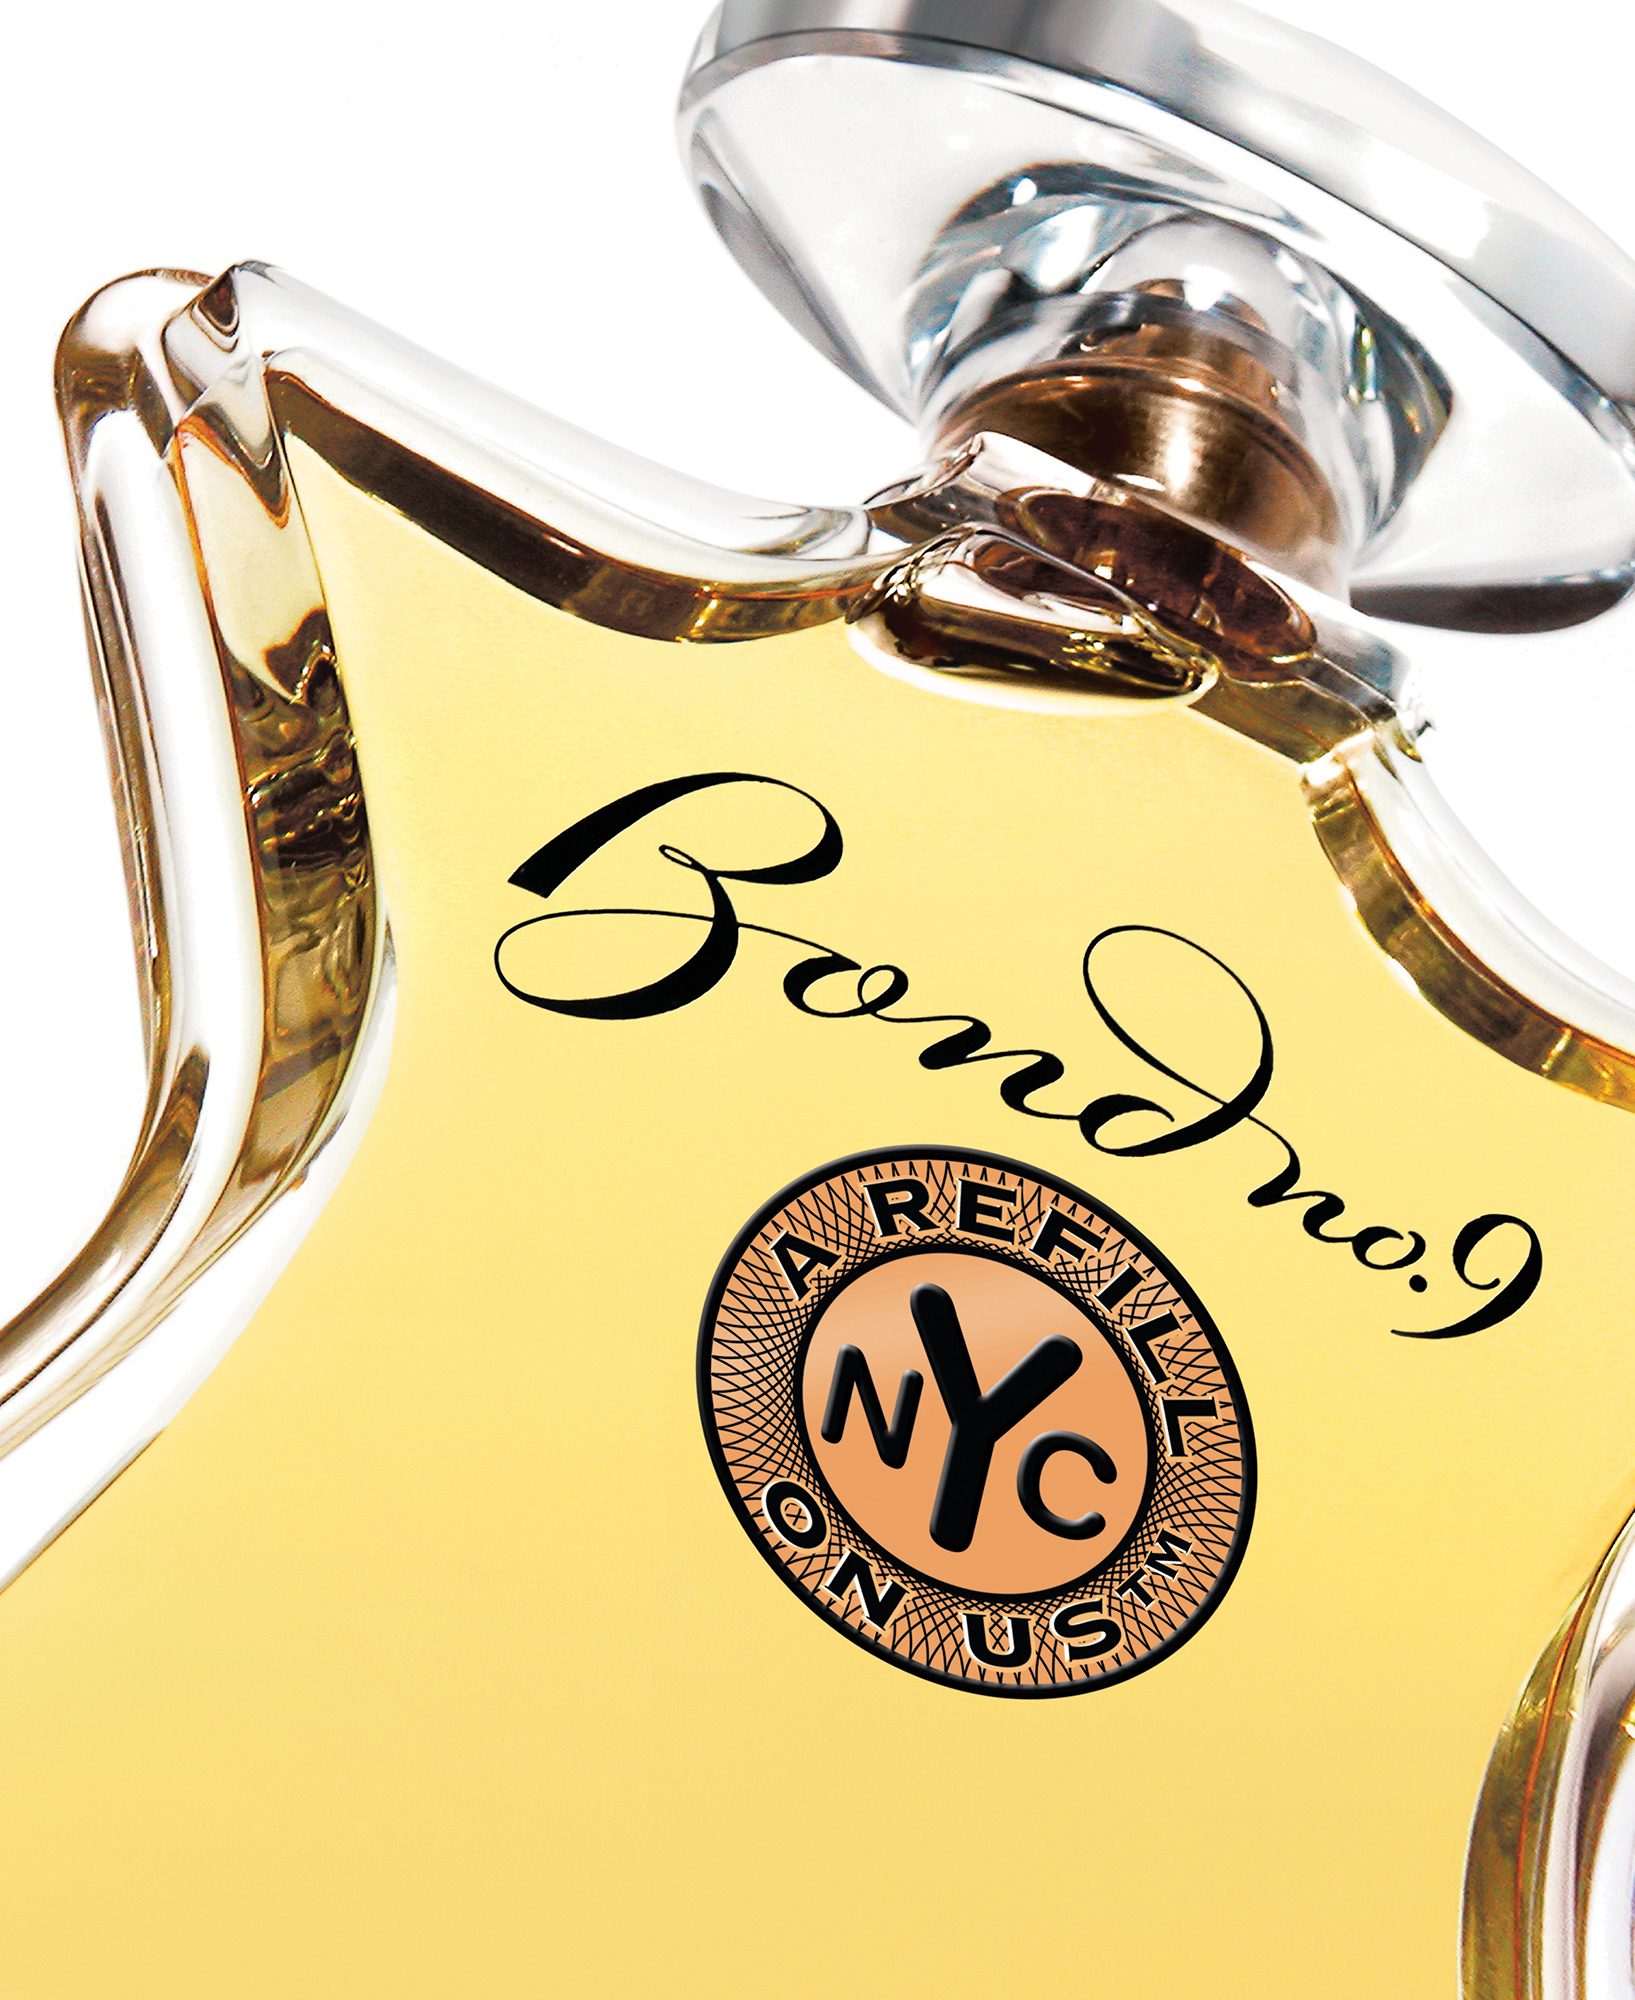 Bond No. 9's best-kept secret is out: A Refill on Us!